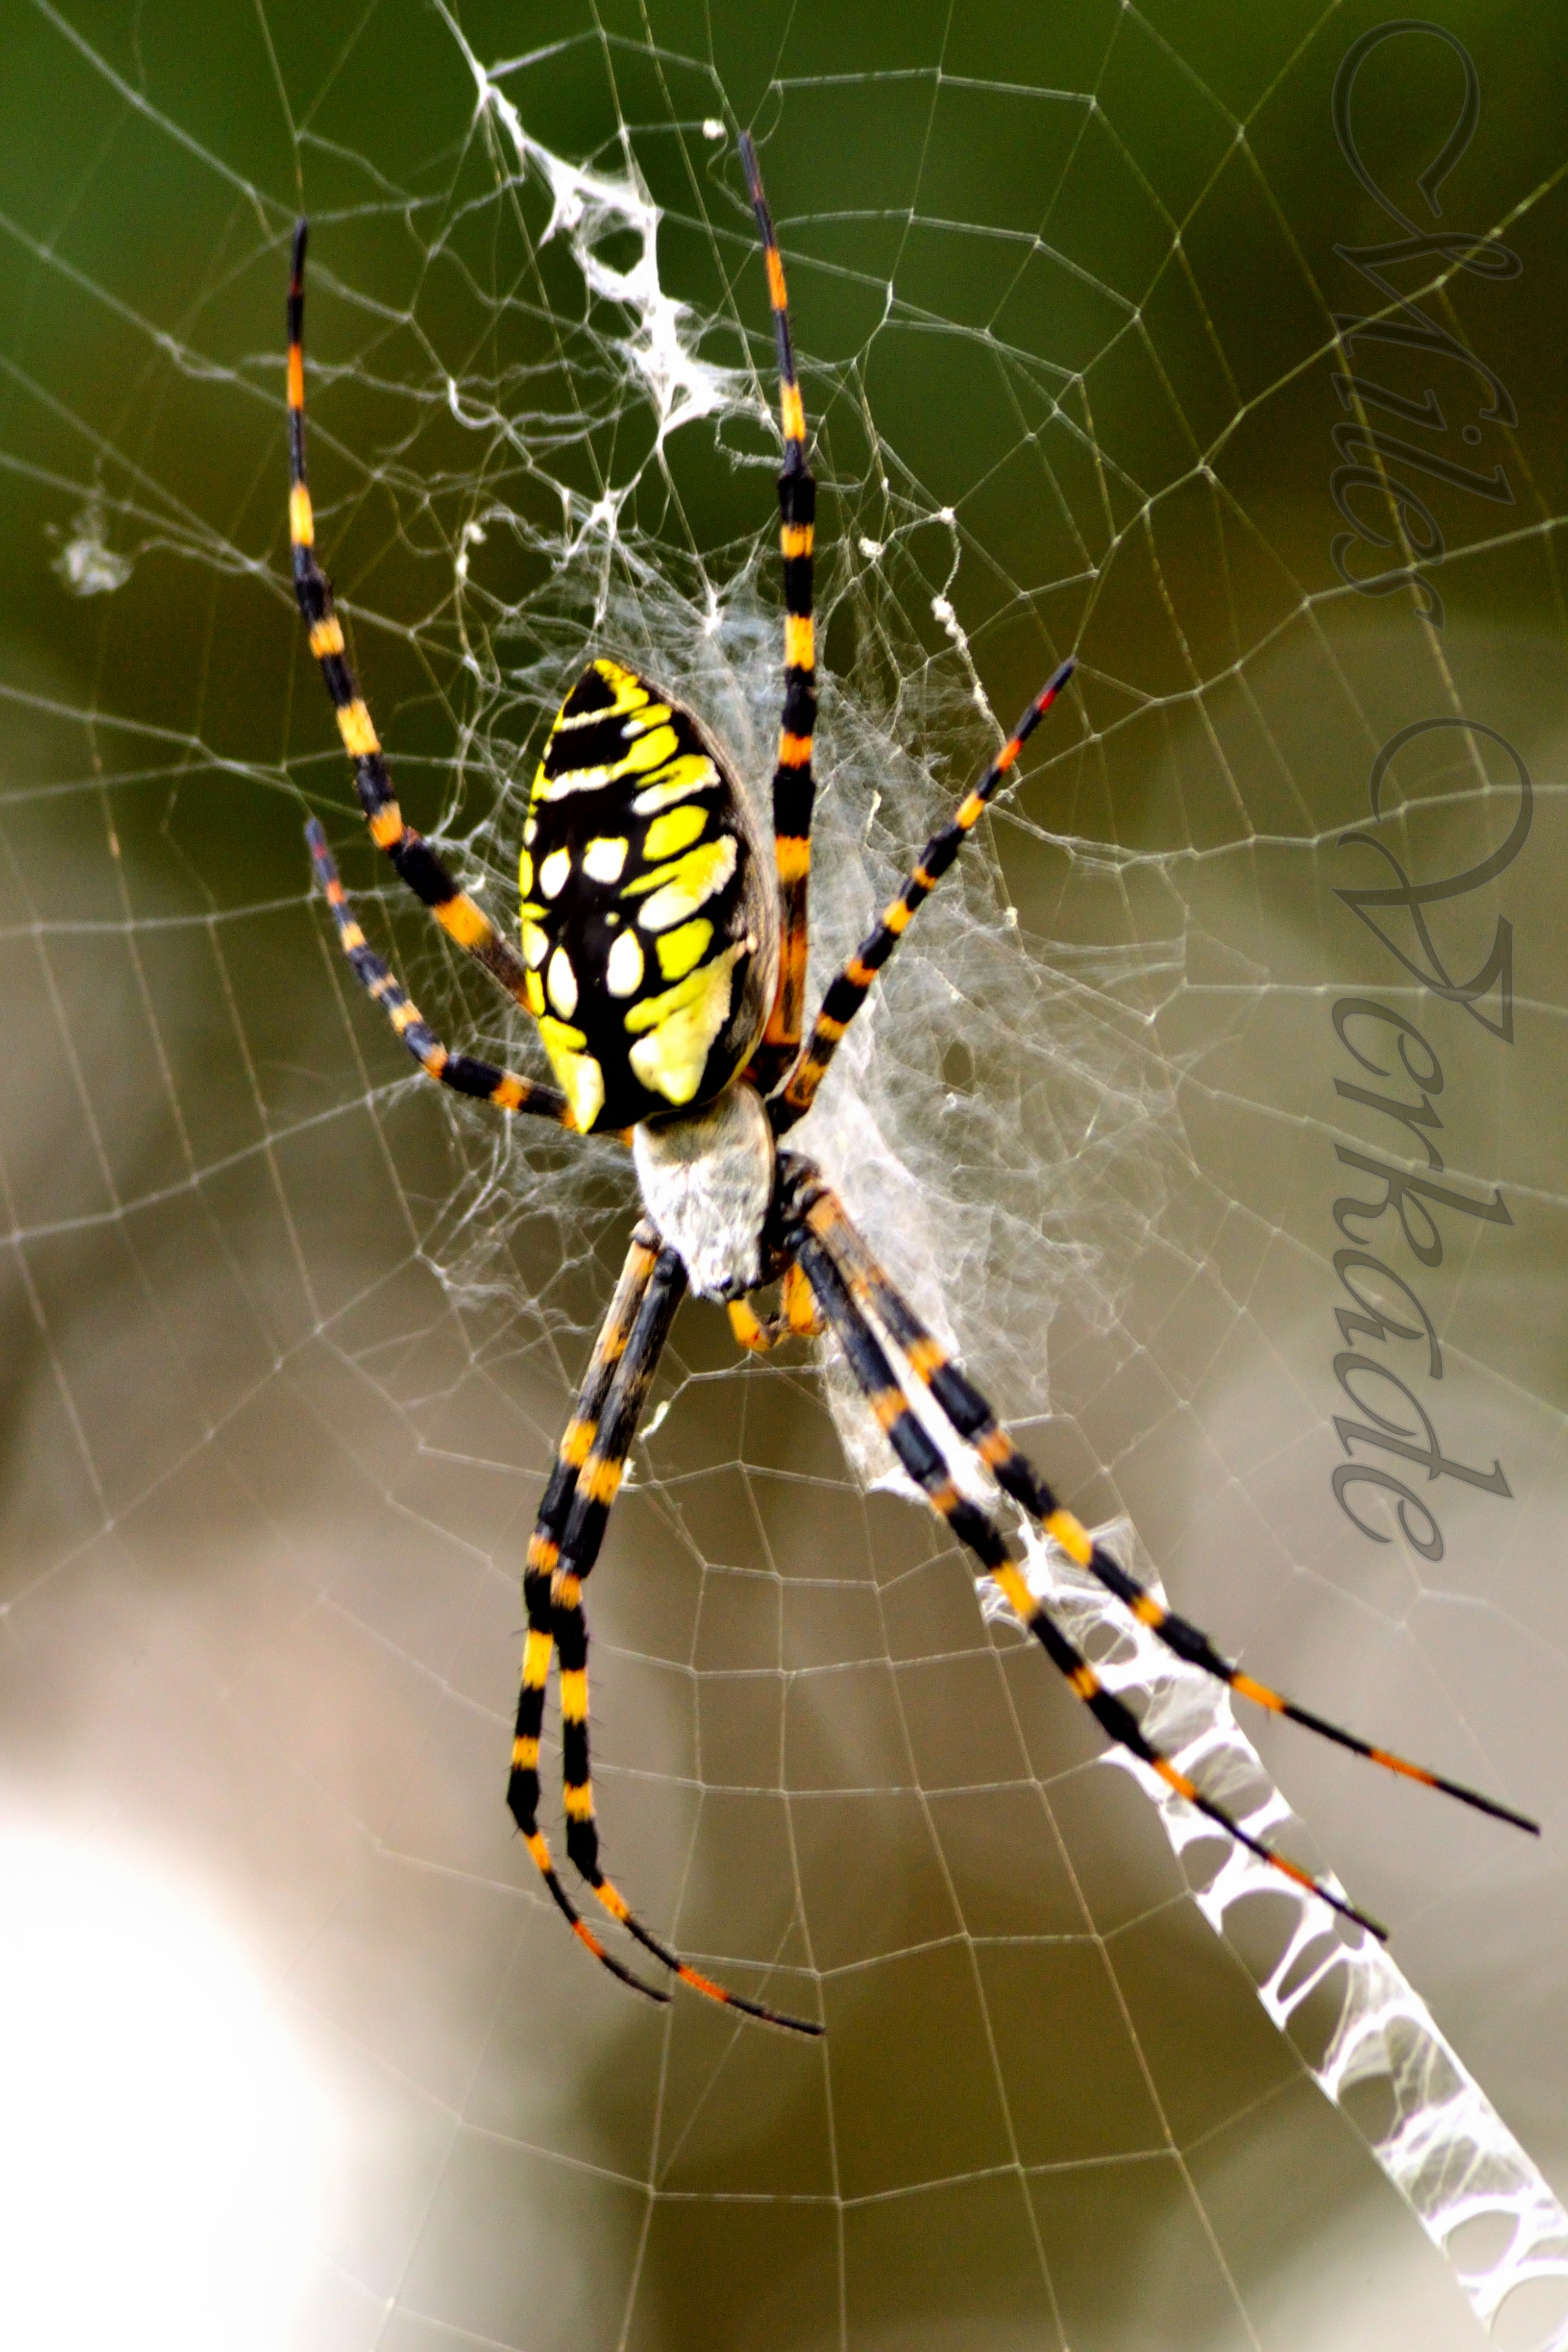 Black and yellow argiope spider by plantm on deviantart for Yellow garden spider poisonous